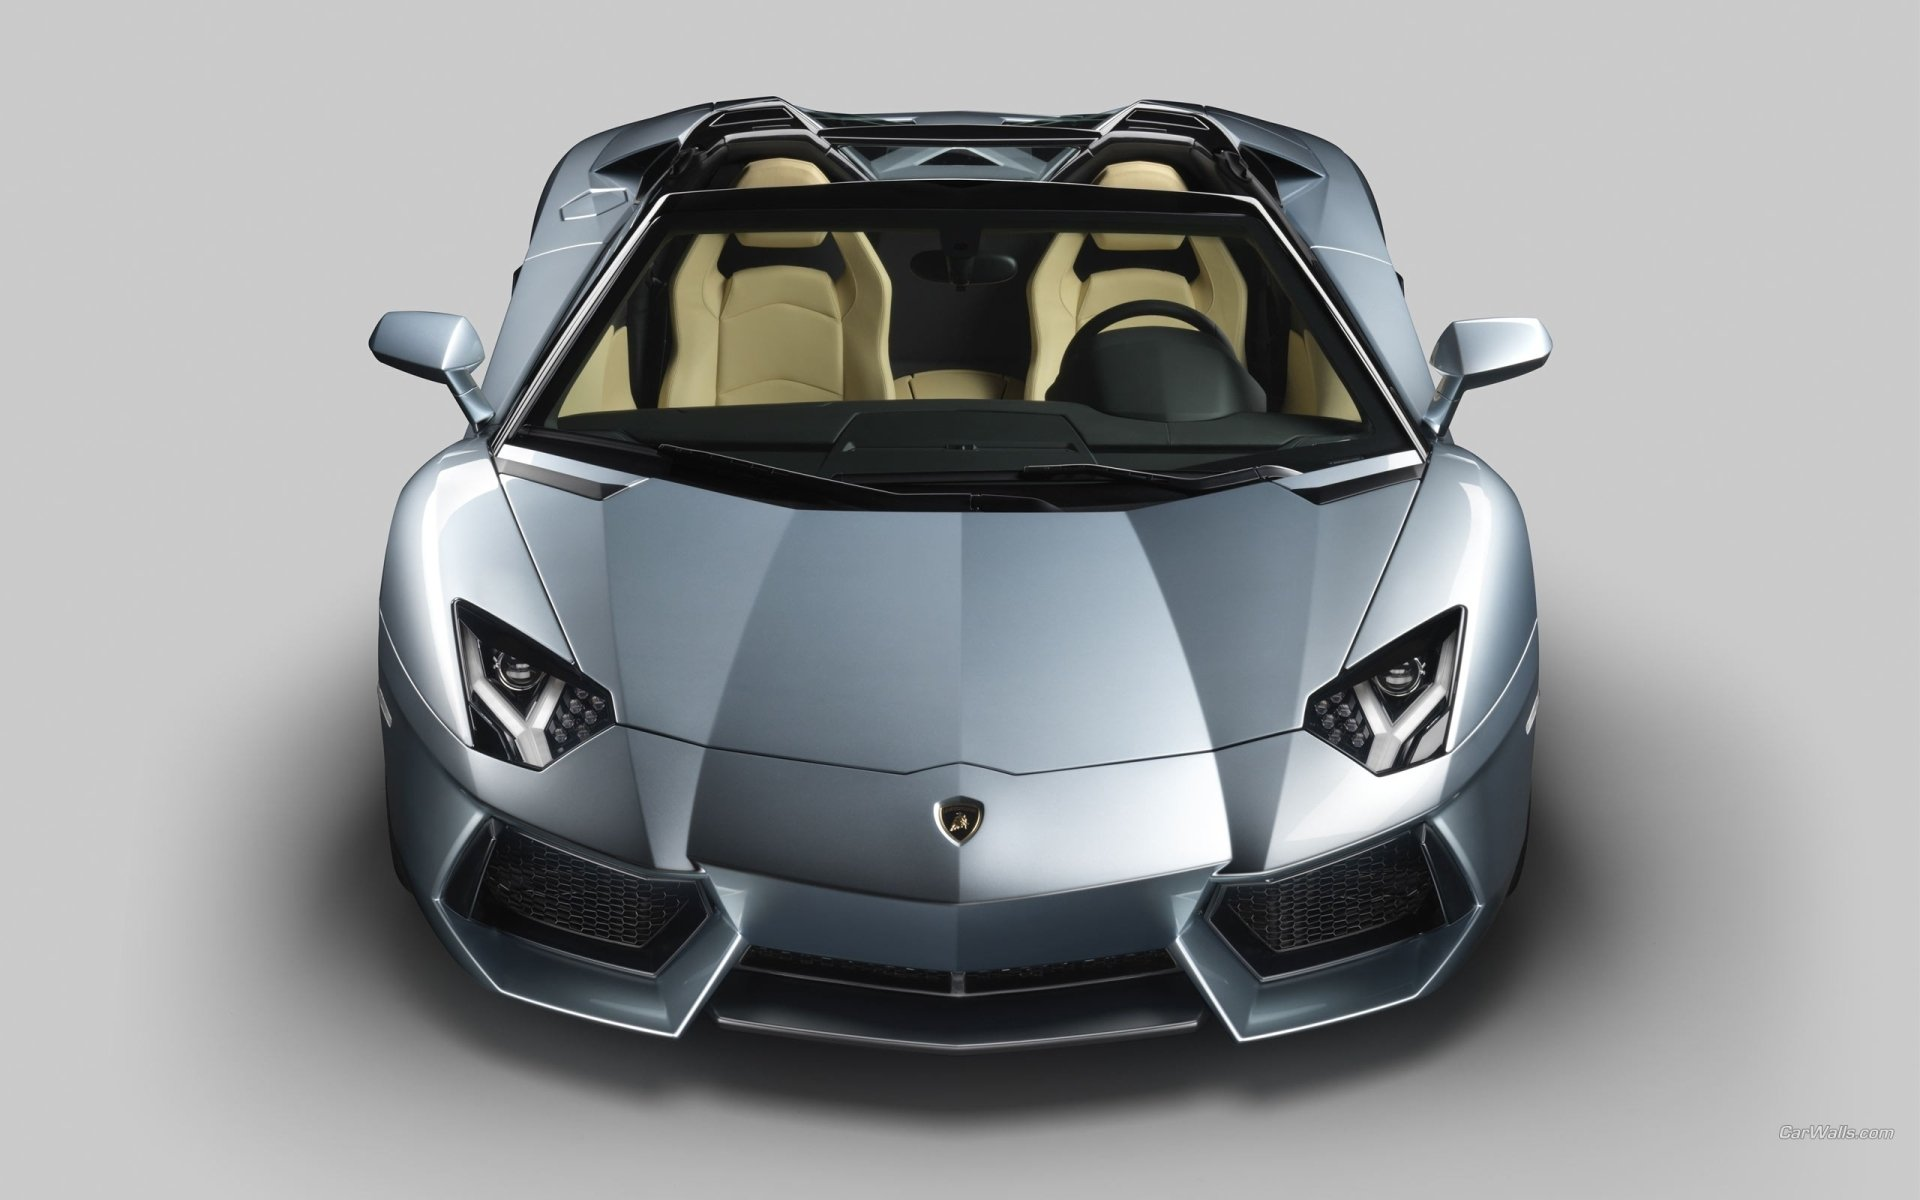 Vehicles - Lamborghini Aventador LP 700-4  Silver Car Vehicle Car Supercar Lamborghini Lamborghini Aventador Lamborghini Aventador LP700-4 Wallpaper